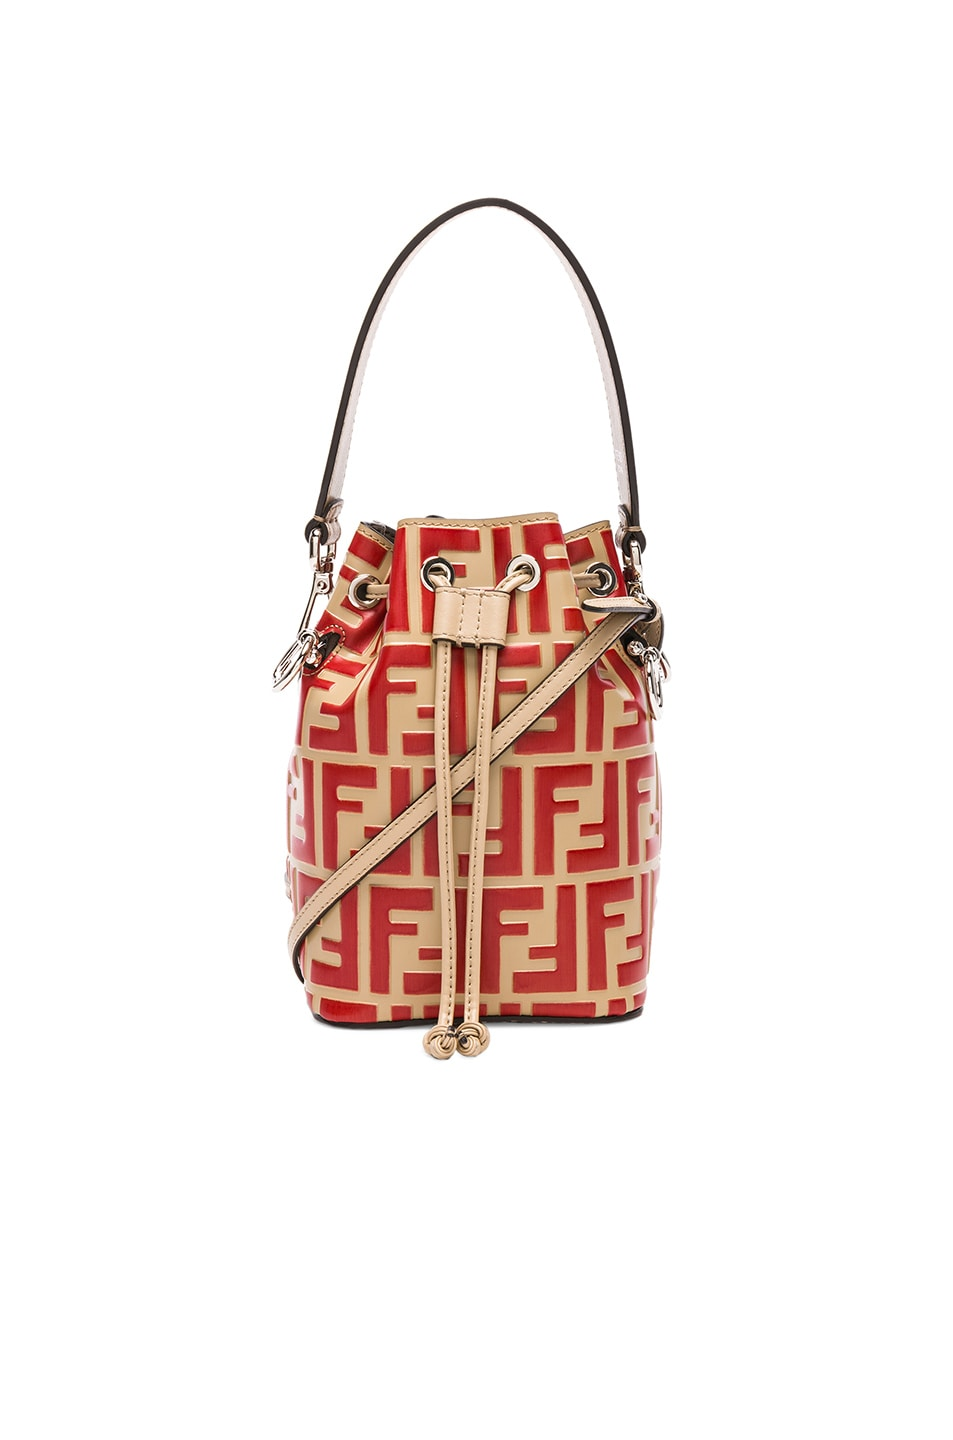 Image 1 of Fendi Logo Print Mon Tresor Crossbody in Starch   Flame c26bcf4e55a9c